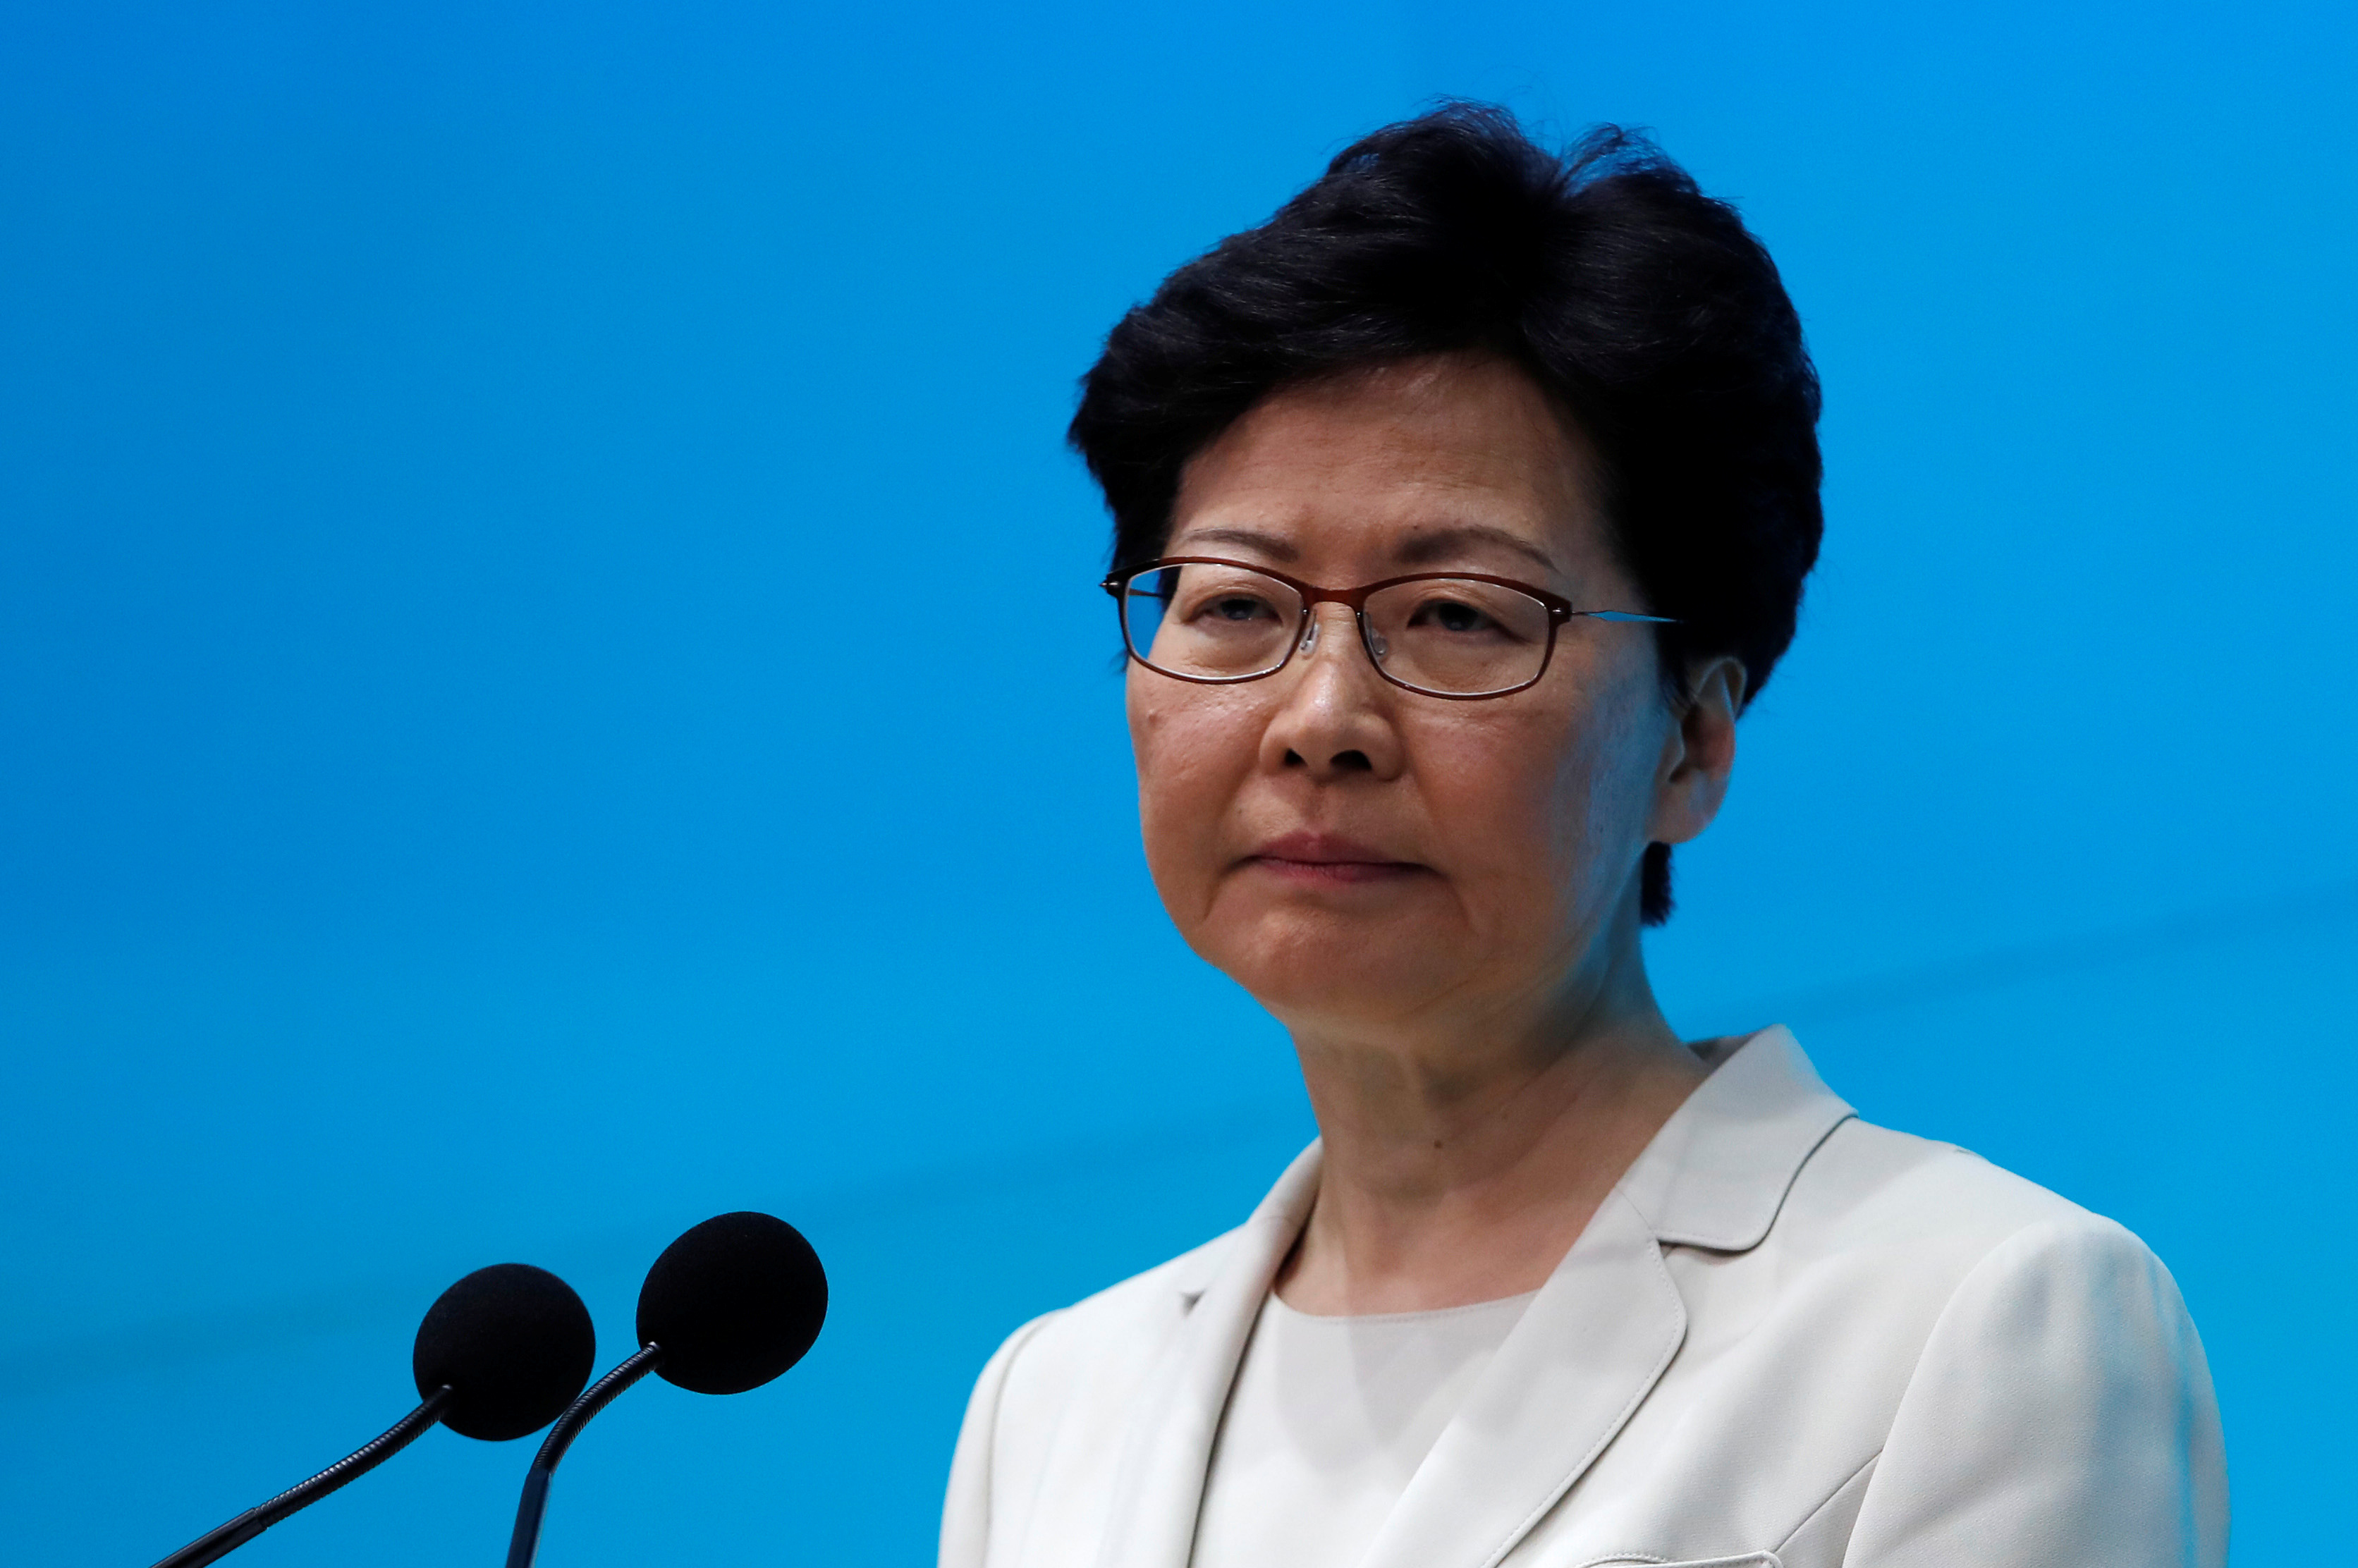 UPDATE 3-Hong Kong leader Lam does not rule out Beijing help, as economy suffers